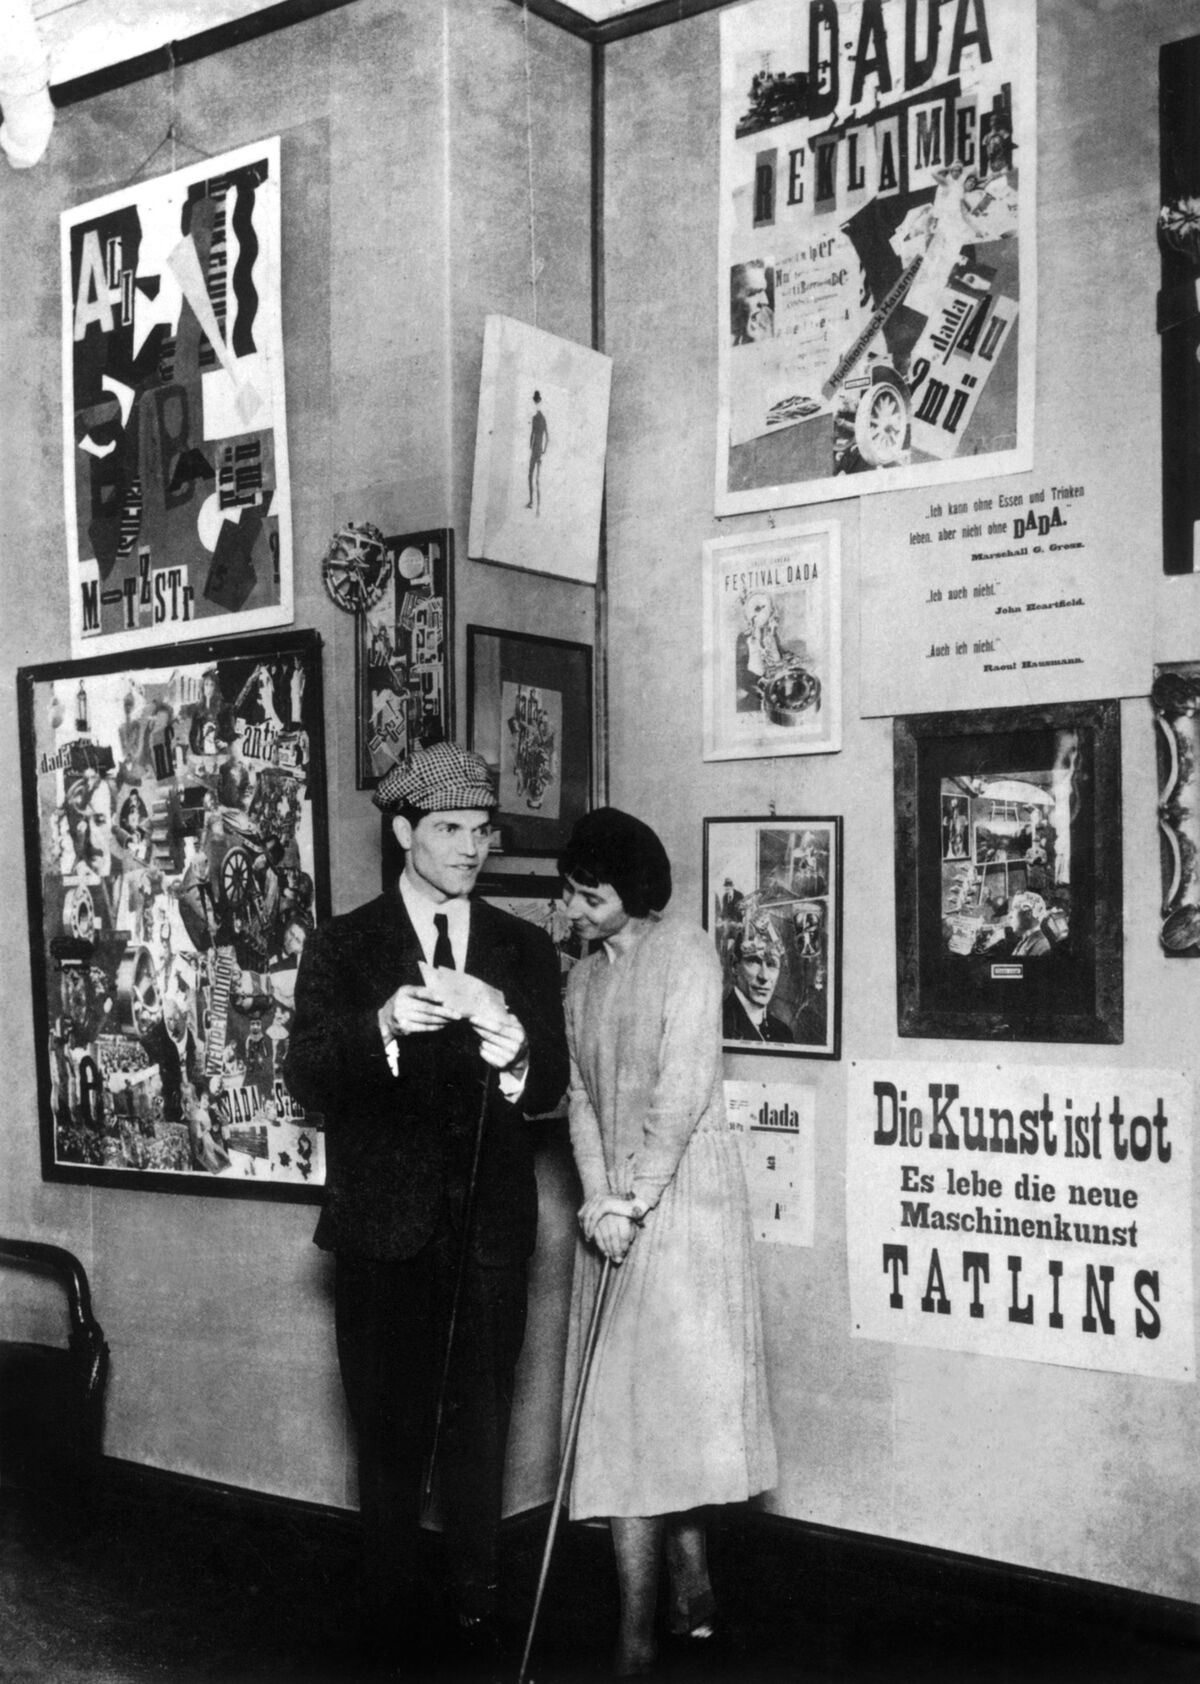 Raoul Hausmann and Hannah Höch at the International Dada Fair in Berlin, 1920. Photo by Apic/Getty Images.